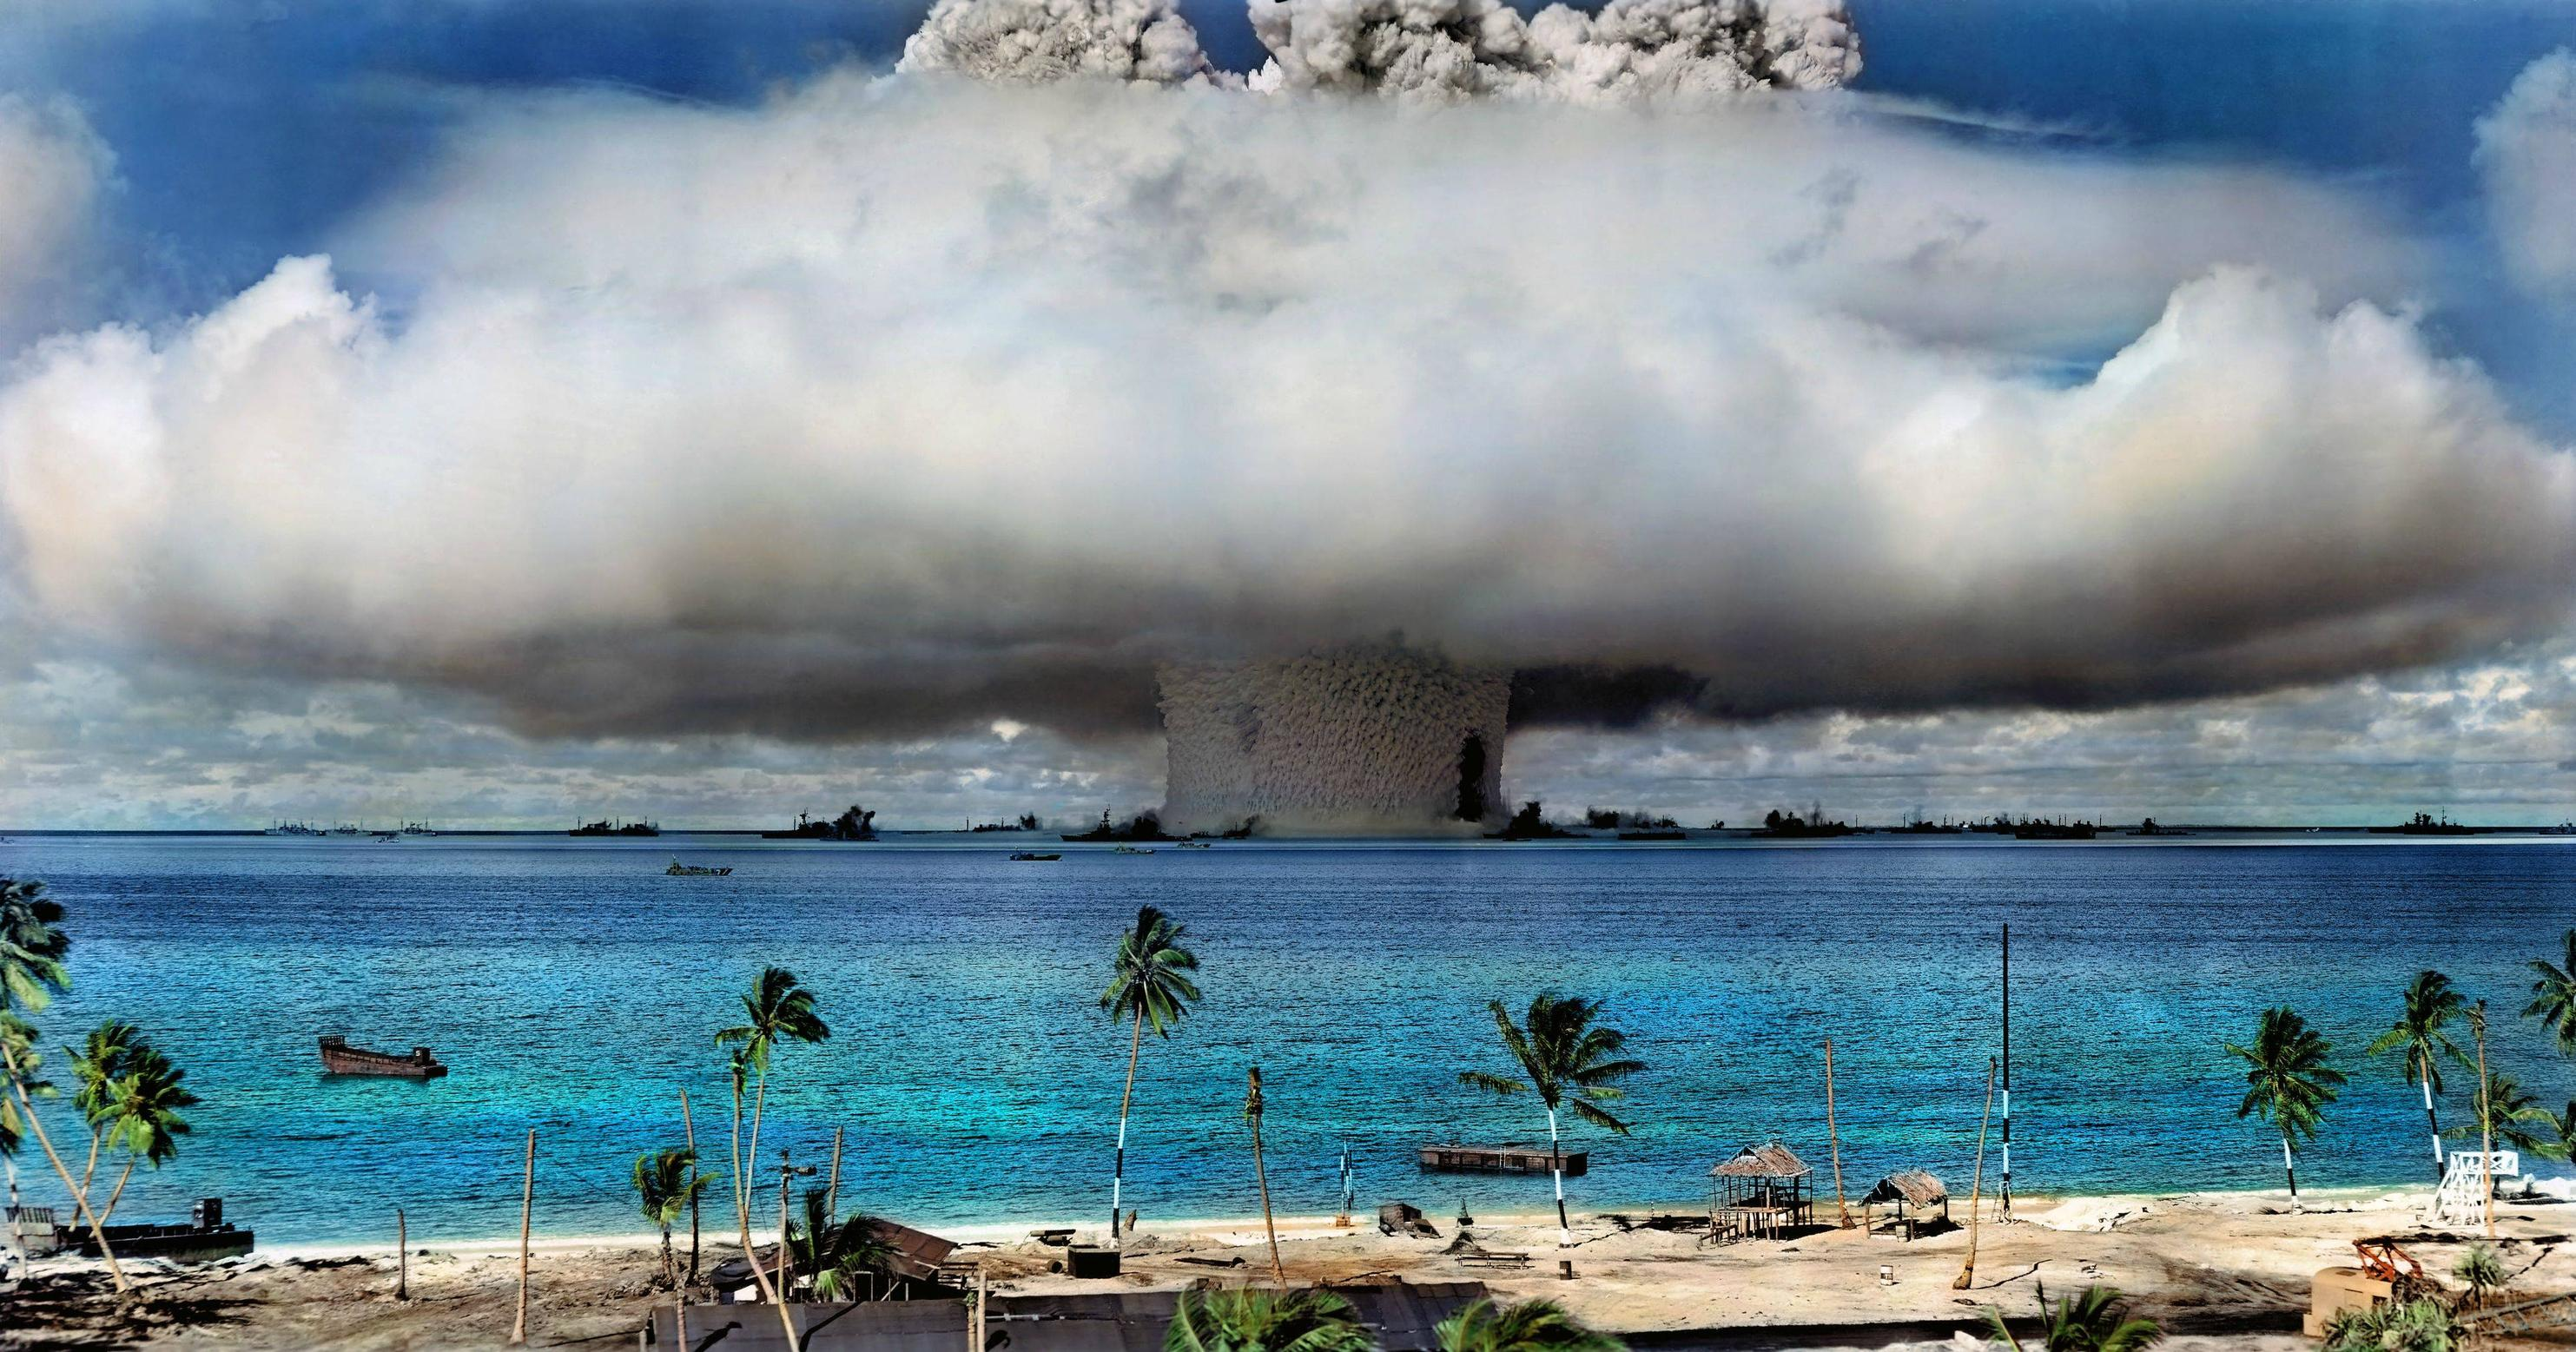 the controversy surrounding nuclear proliferation in the world today Debating the bomb grades/level: high first nuclear weapon are still with us today and have shaped much of world history for about nuclear proliferation.